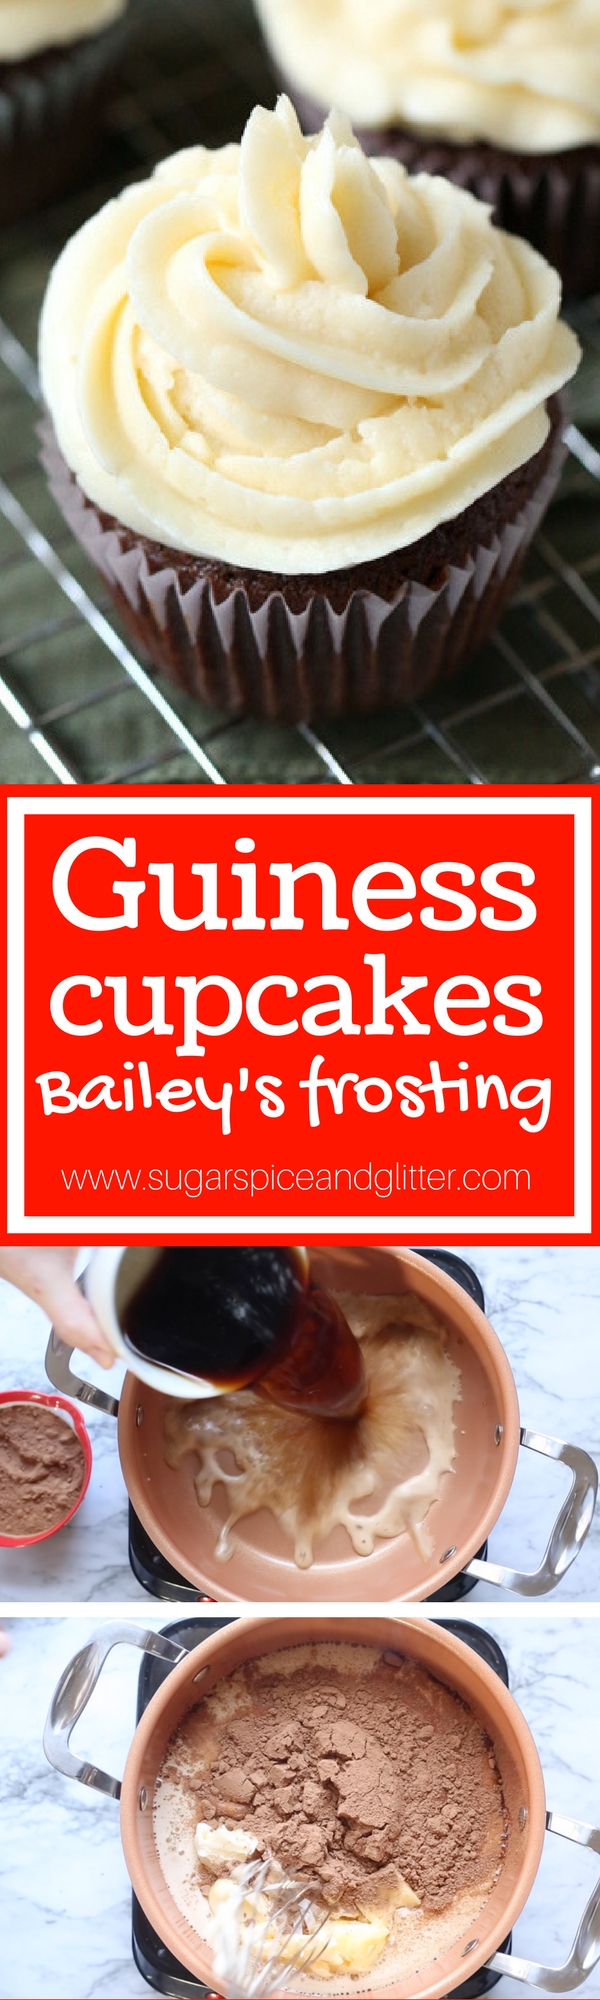 How to make Chocolate Guinness Cupcakes with Bailey's Irish Cream Frosting - a boozy cupcake recipe that is utterly decadent with a rich chocolate flavor and velvety frosting